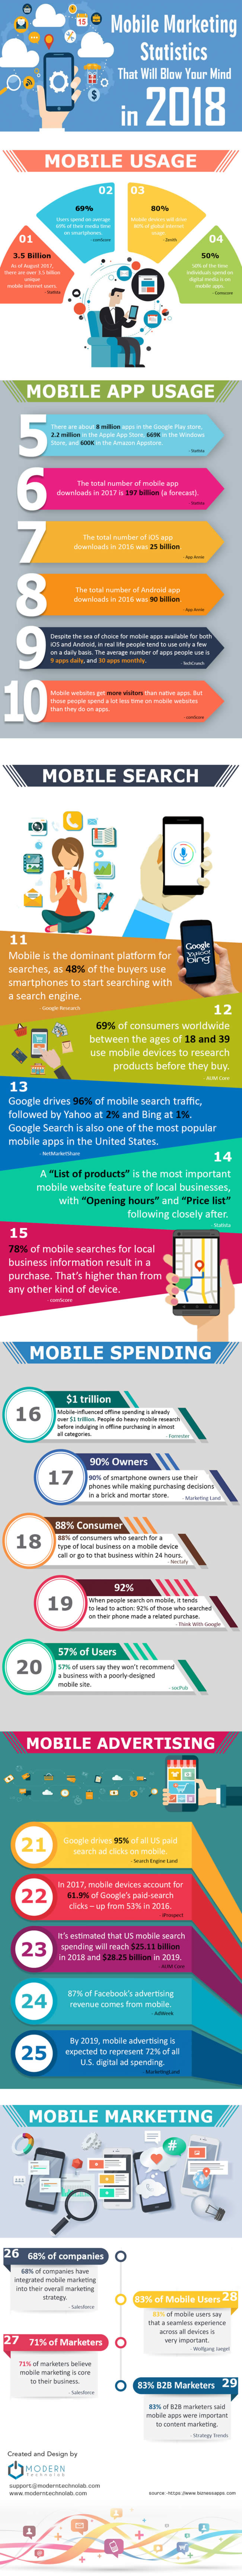 Mobile Marketing. Le statistiche per il 2018 . Infografica